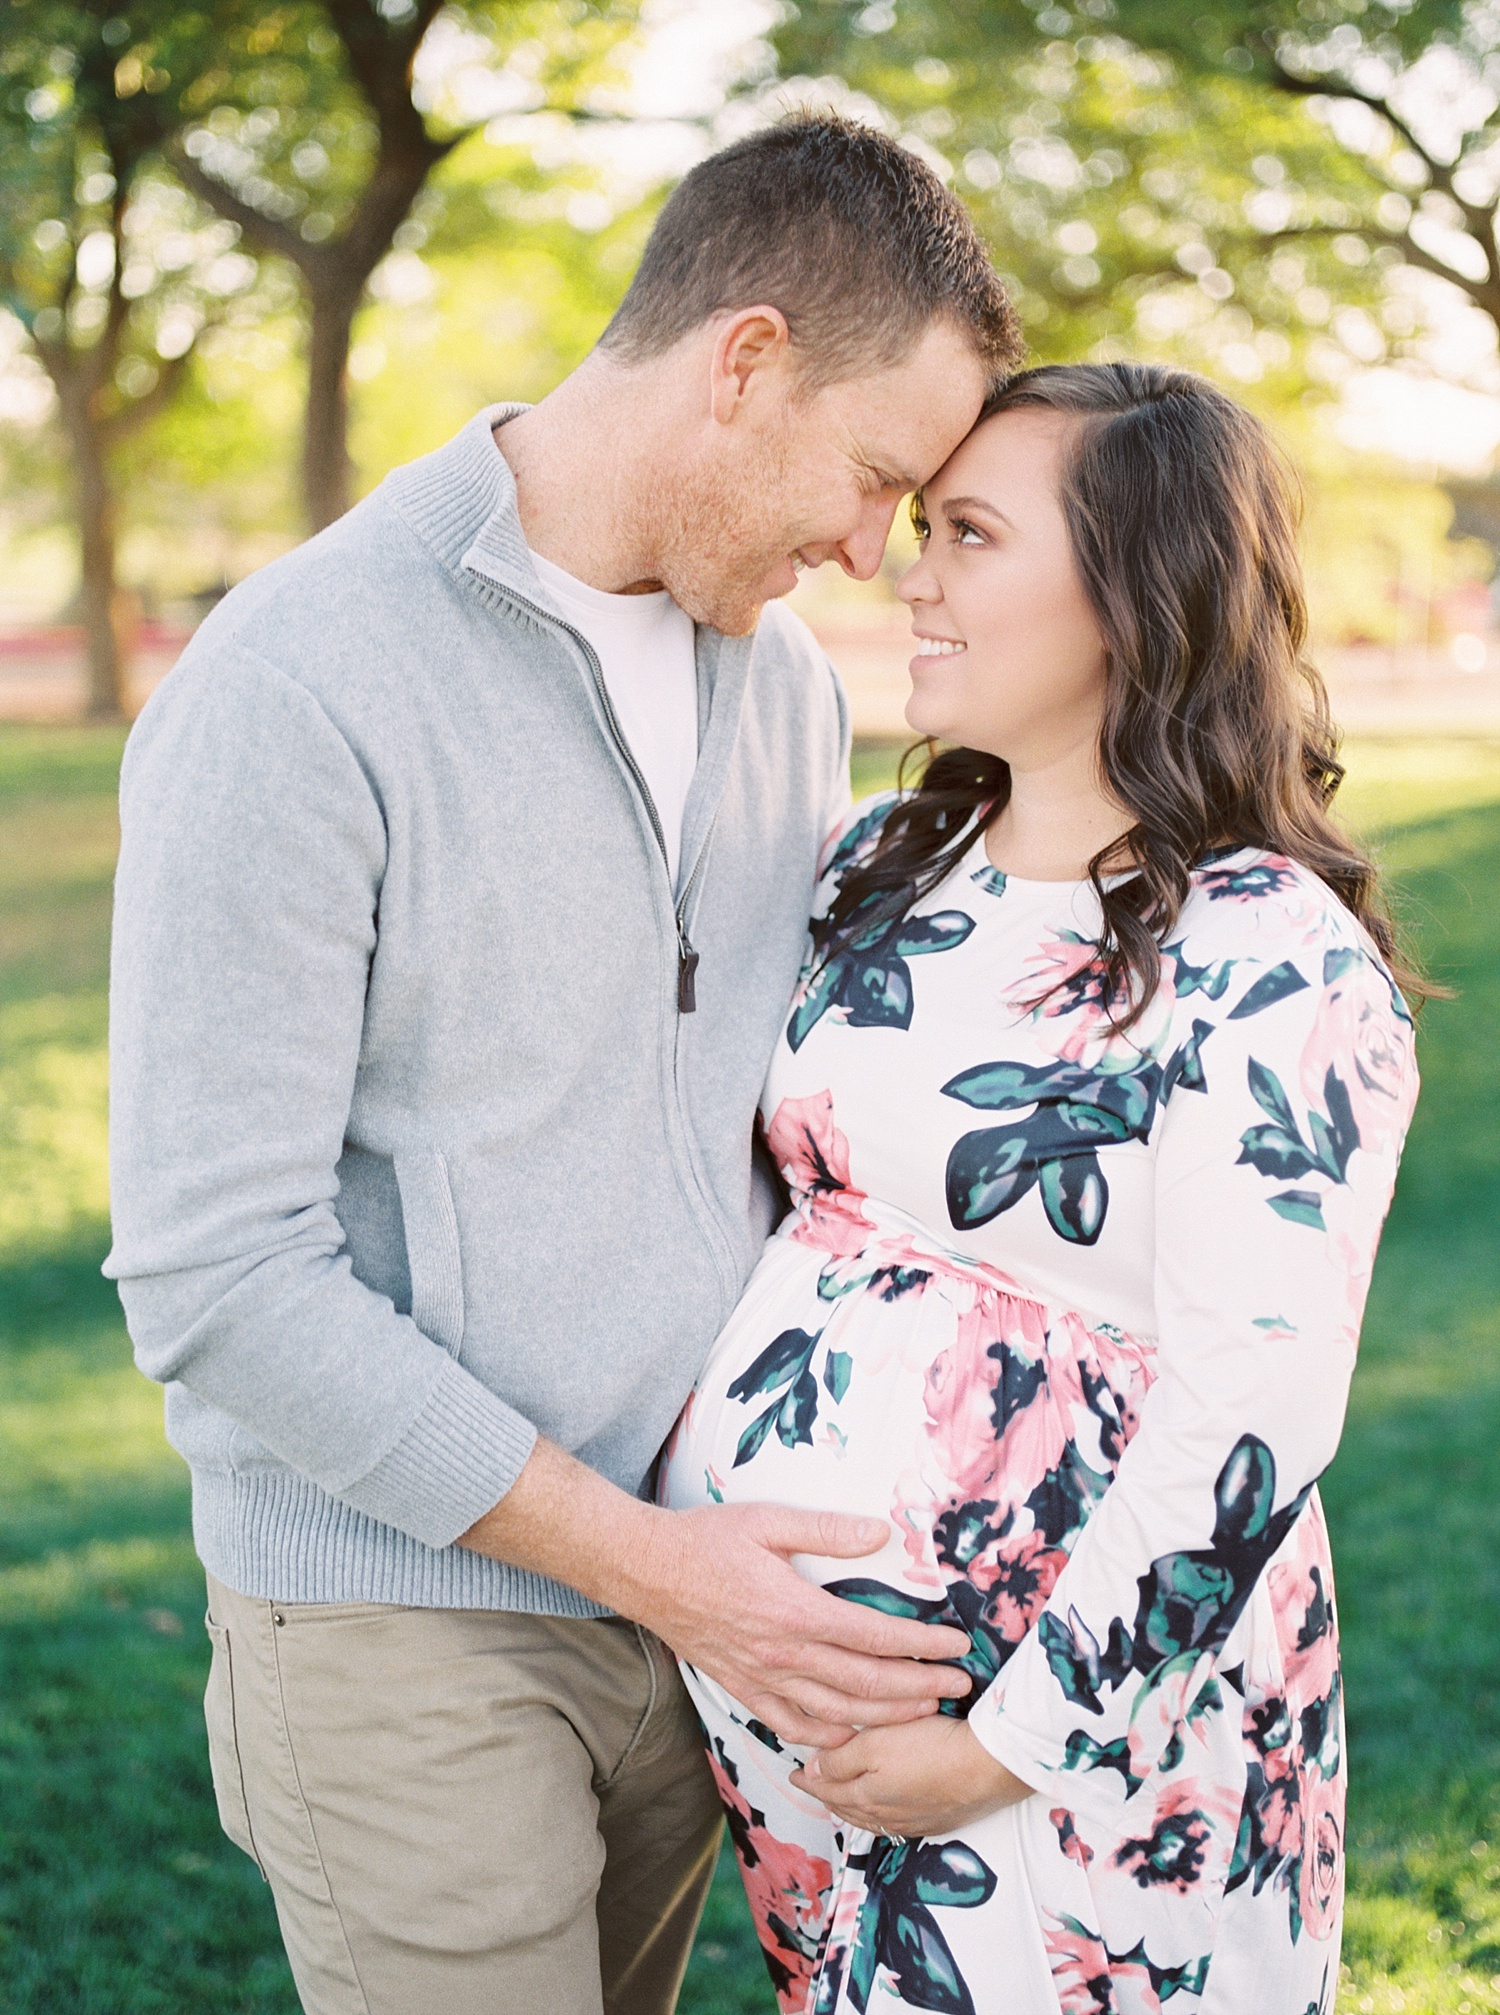 marieljoy-maternity-couple-park